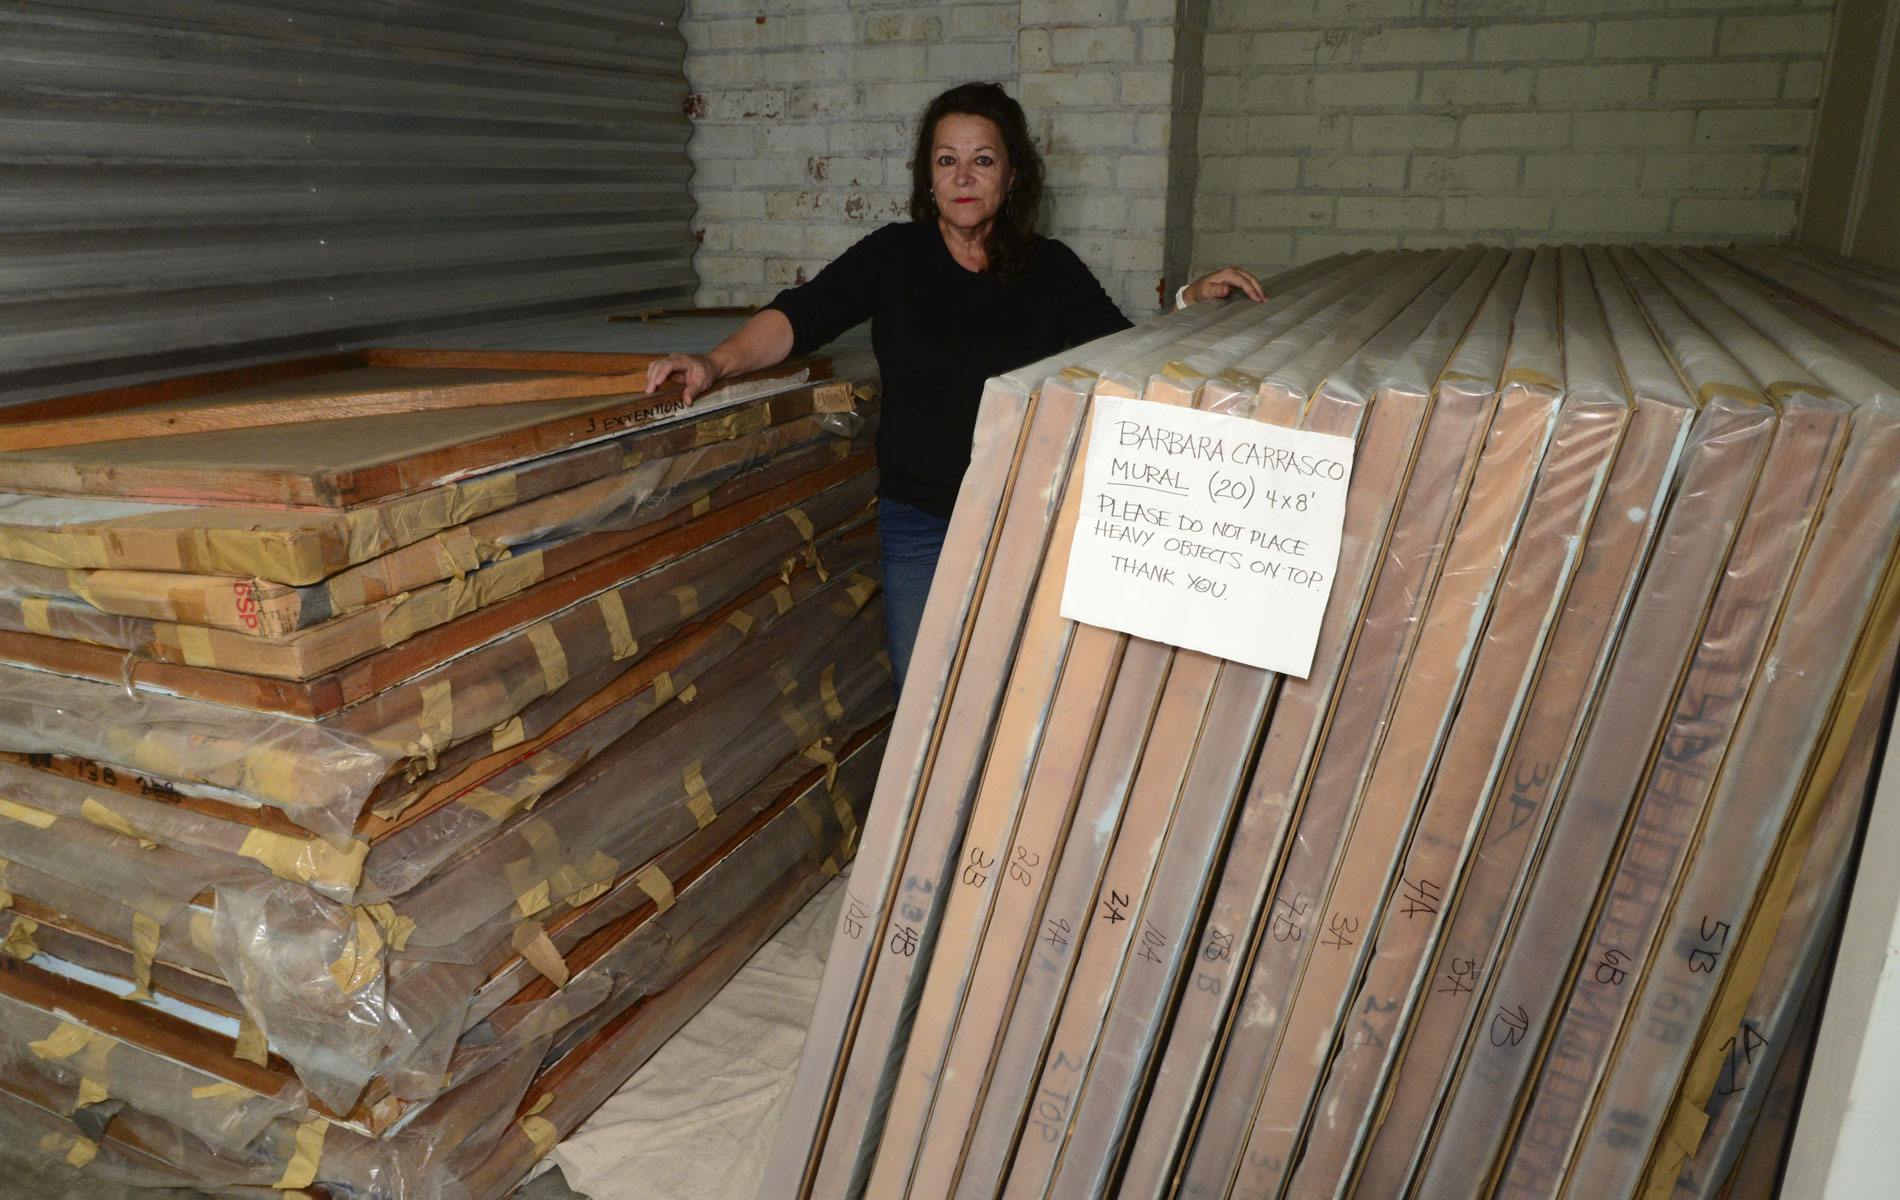 <h1>Barbara Carrasco with panels of <em>L.A. History</em> in storage, 2016</h1>